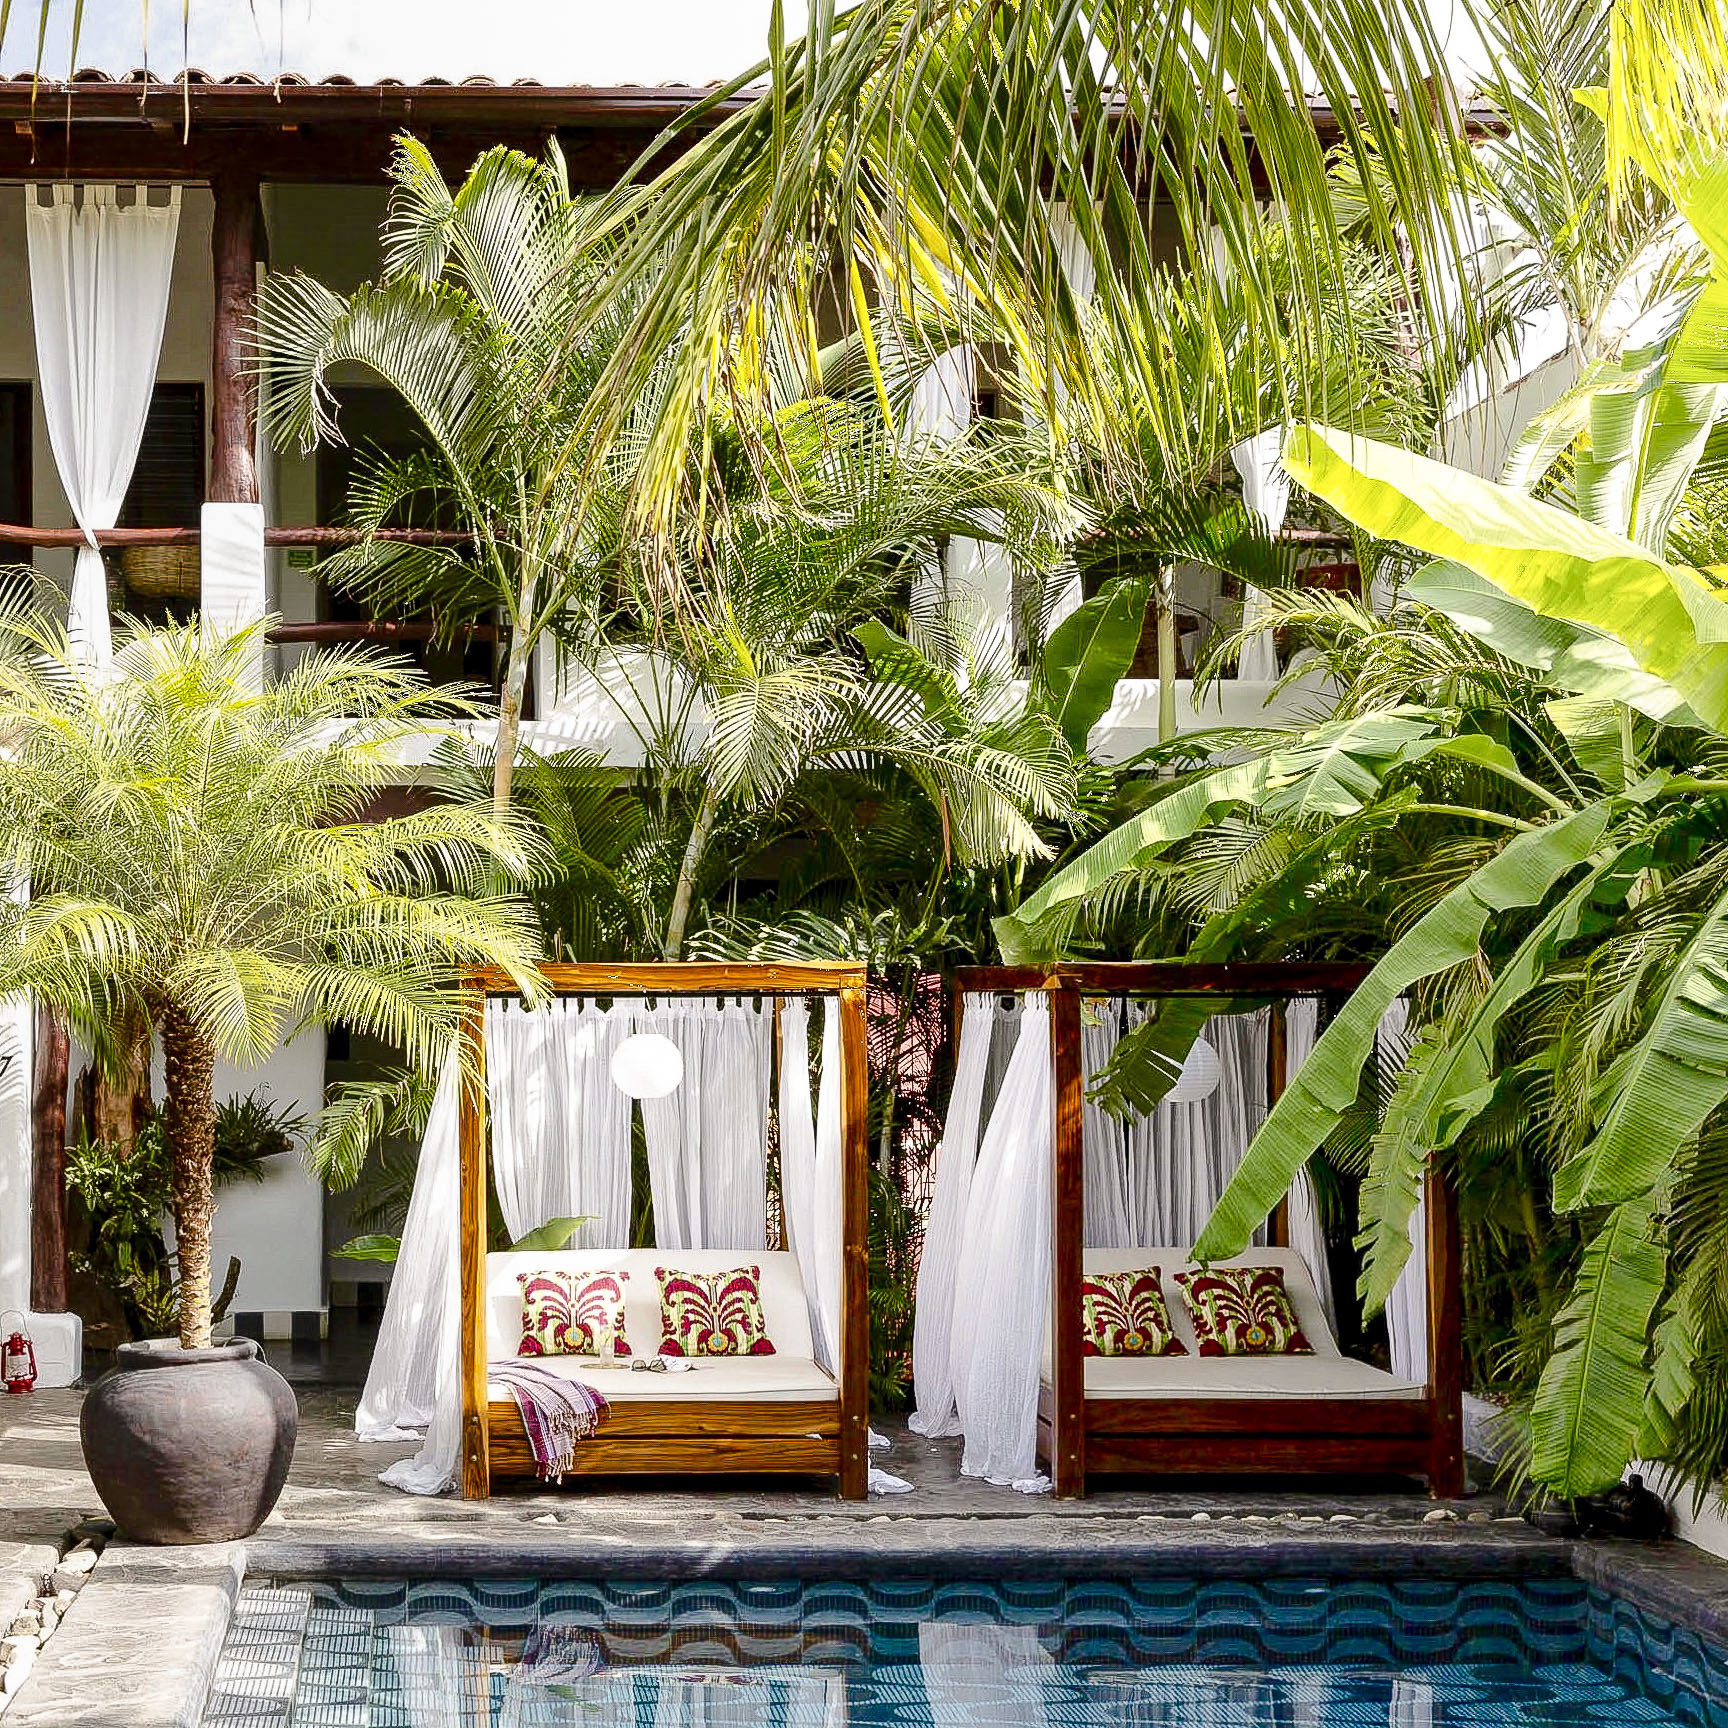 Boutique Hotels Hotels property plant arecales palm tree tree Resort outdoor structure house